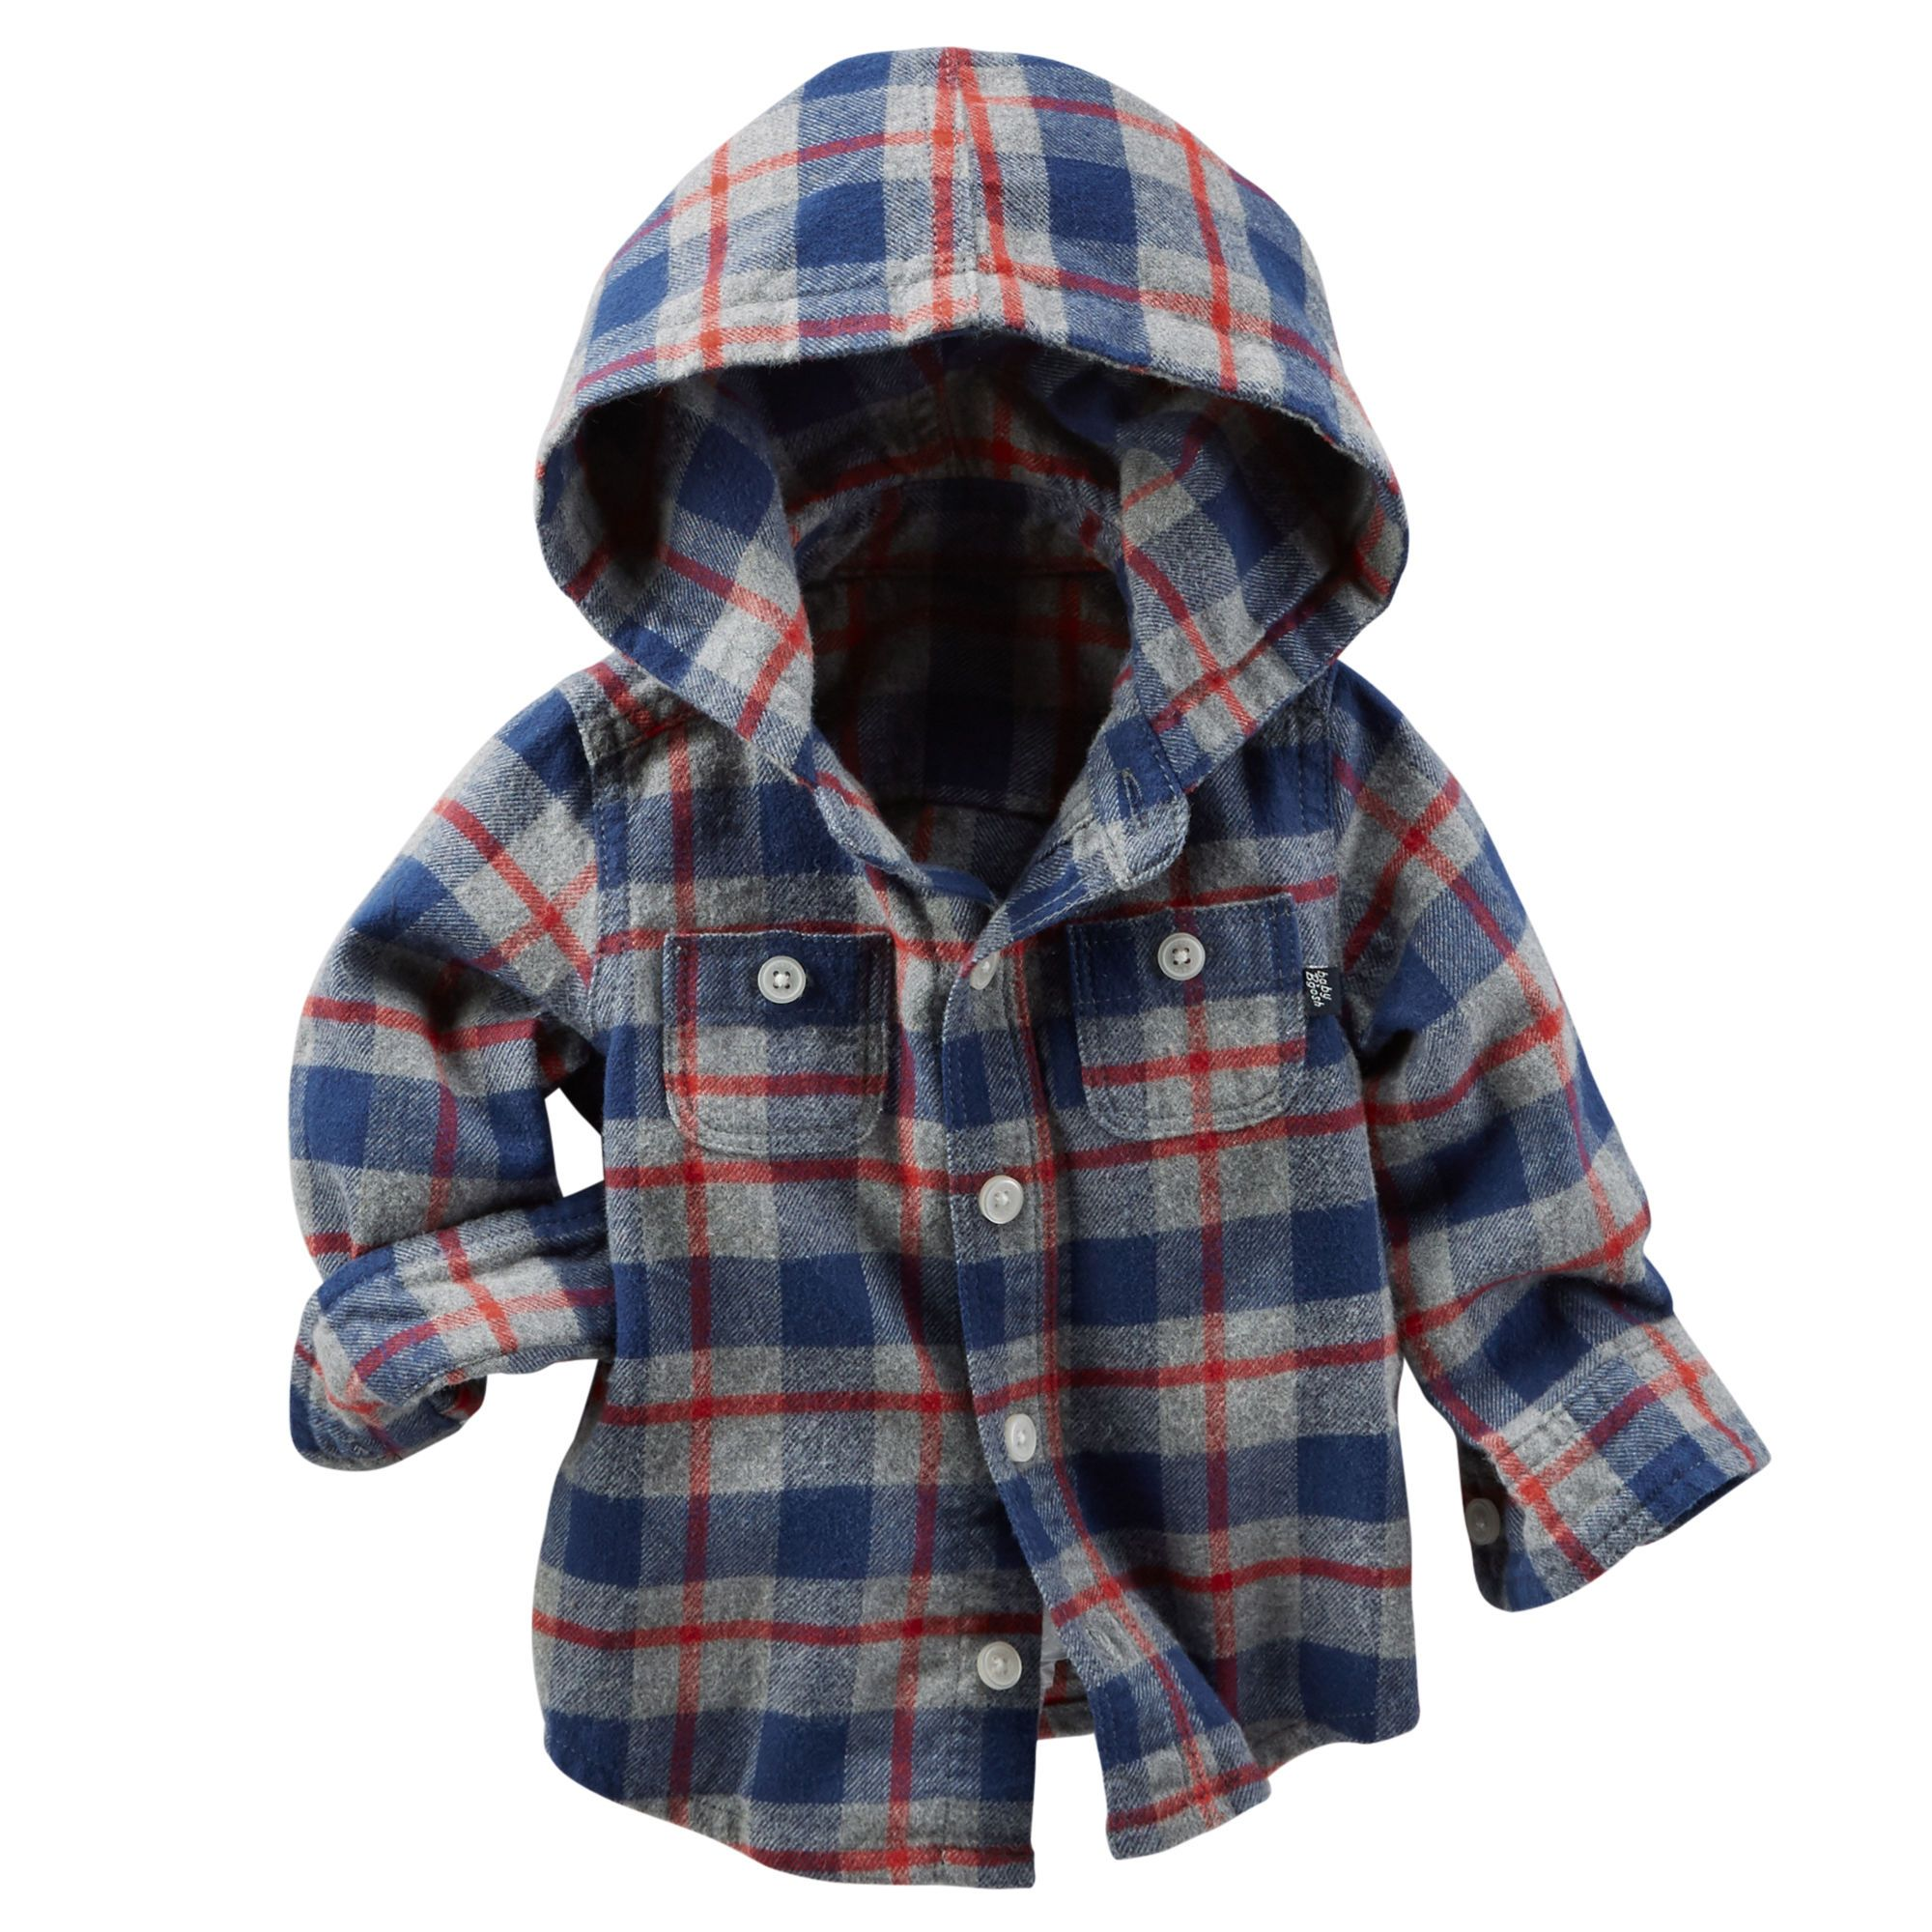 Hooded Flannel Shirt   Baby boy winter outfits, Baby boy ...